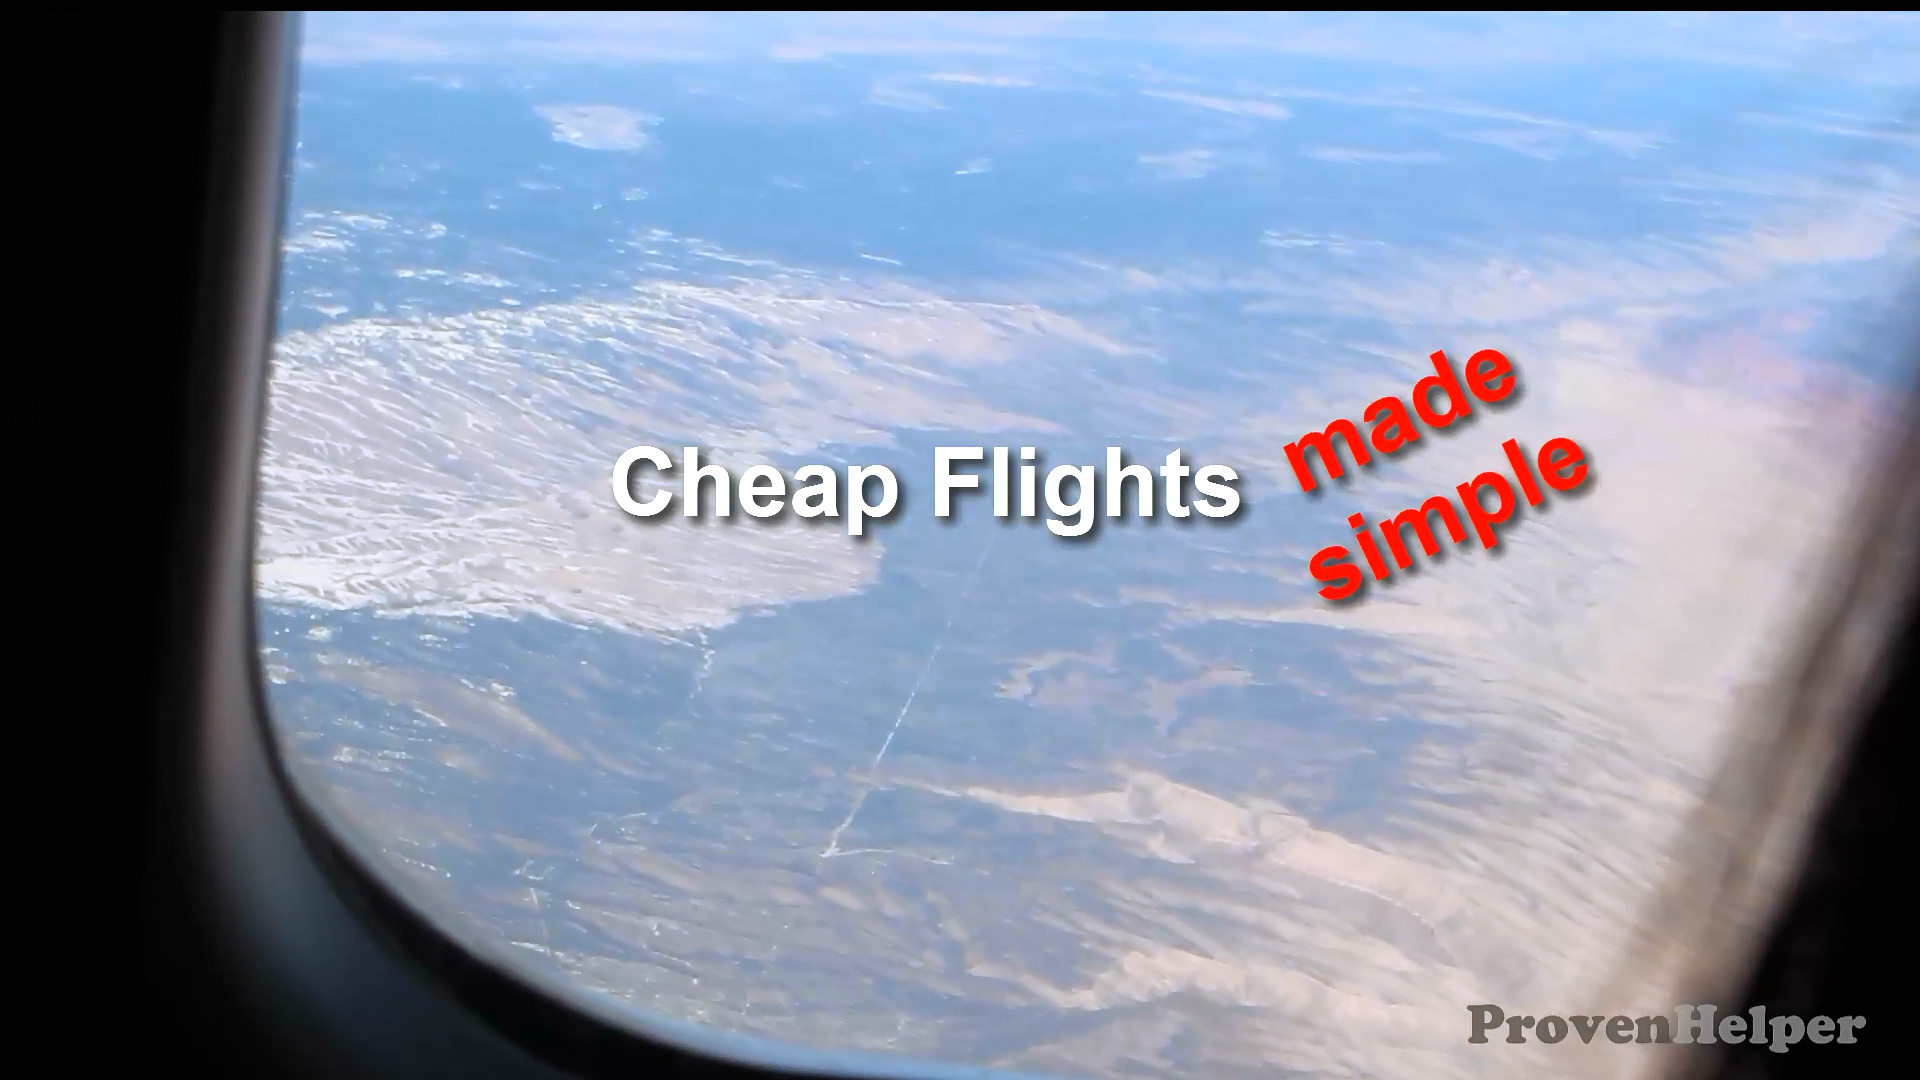 How to Get Cheap Flights to Anywhere using Google - Proven Helper Advice - Simply Additions